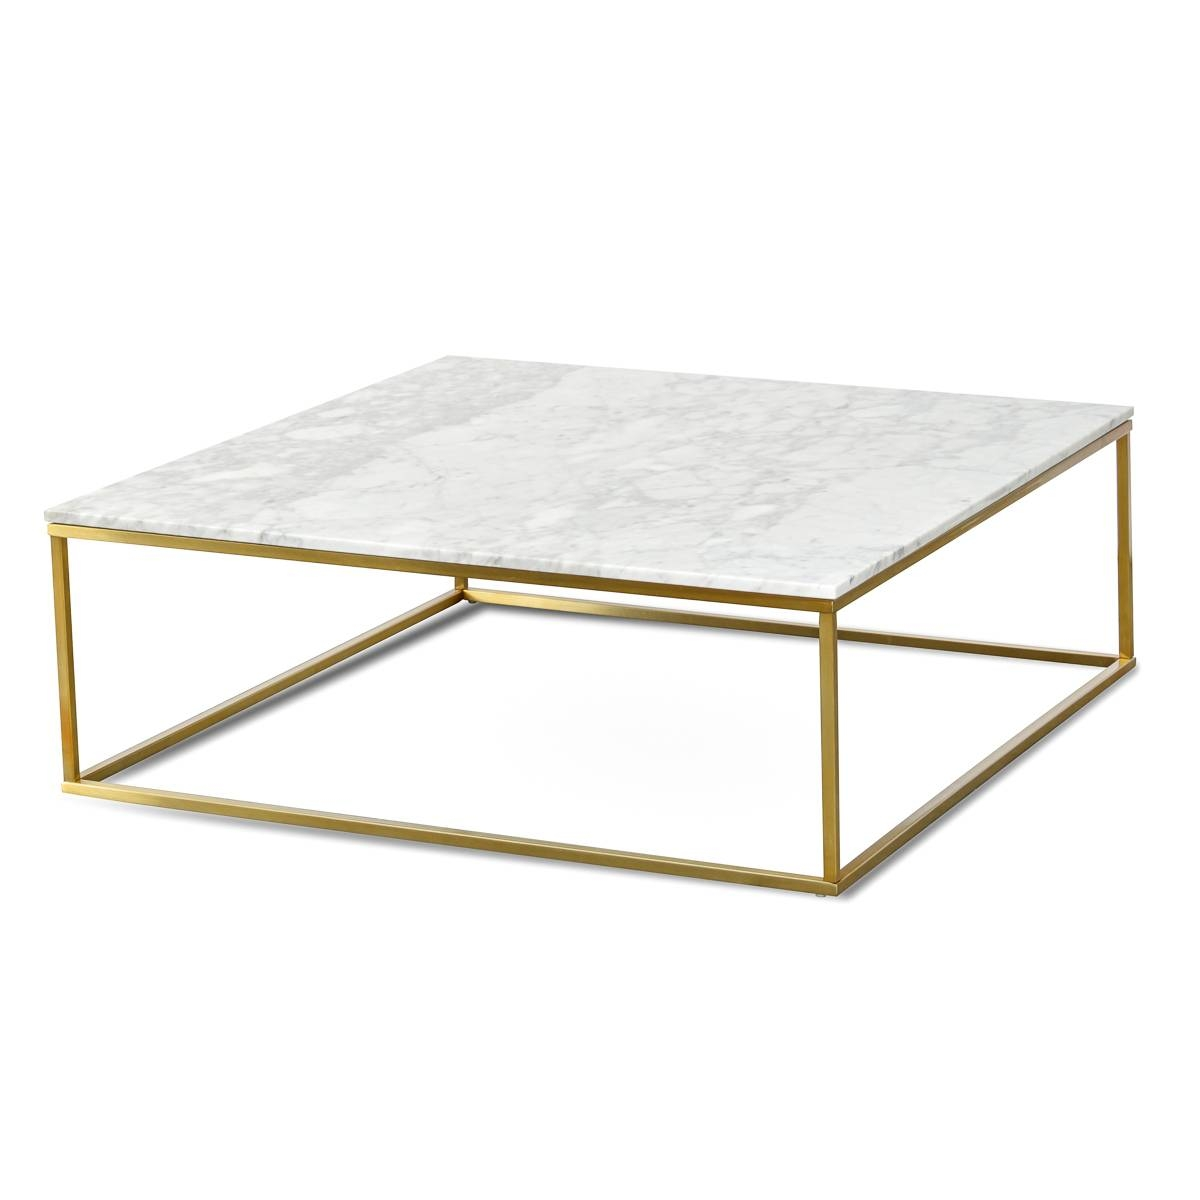 Marble Coffee Table Toronto | Roselawnlutheran throughout White Marble Coffee Tables (Image 20 of 30)